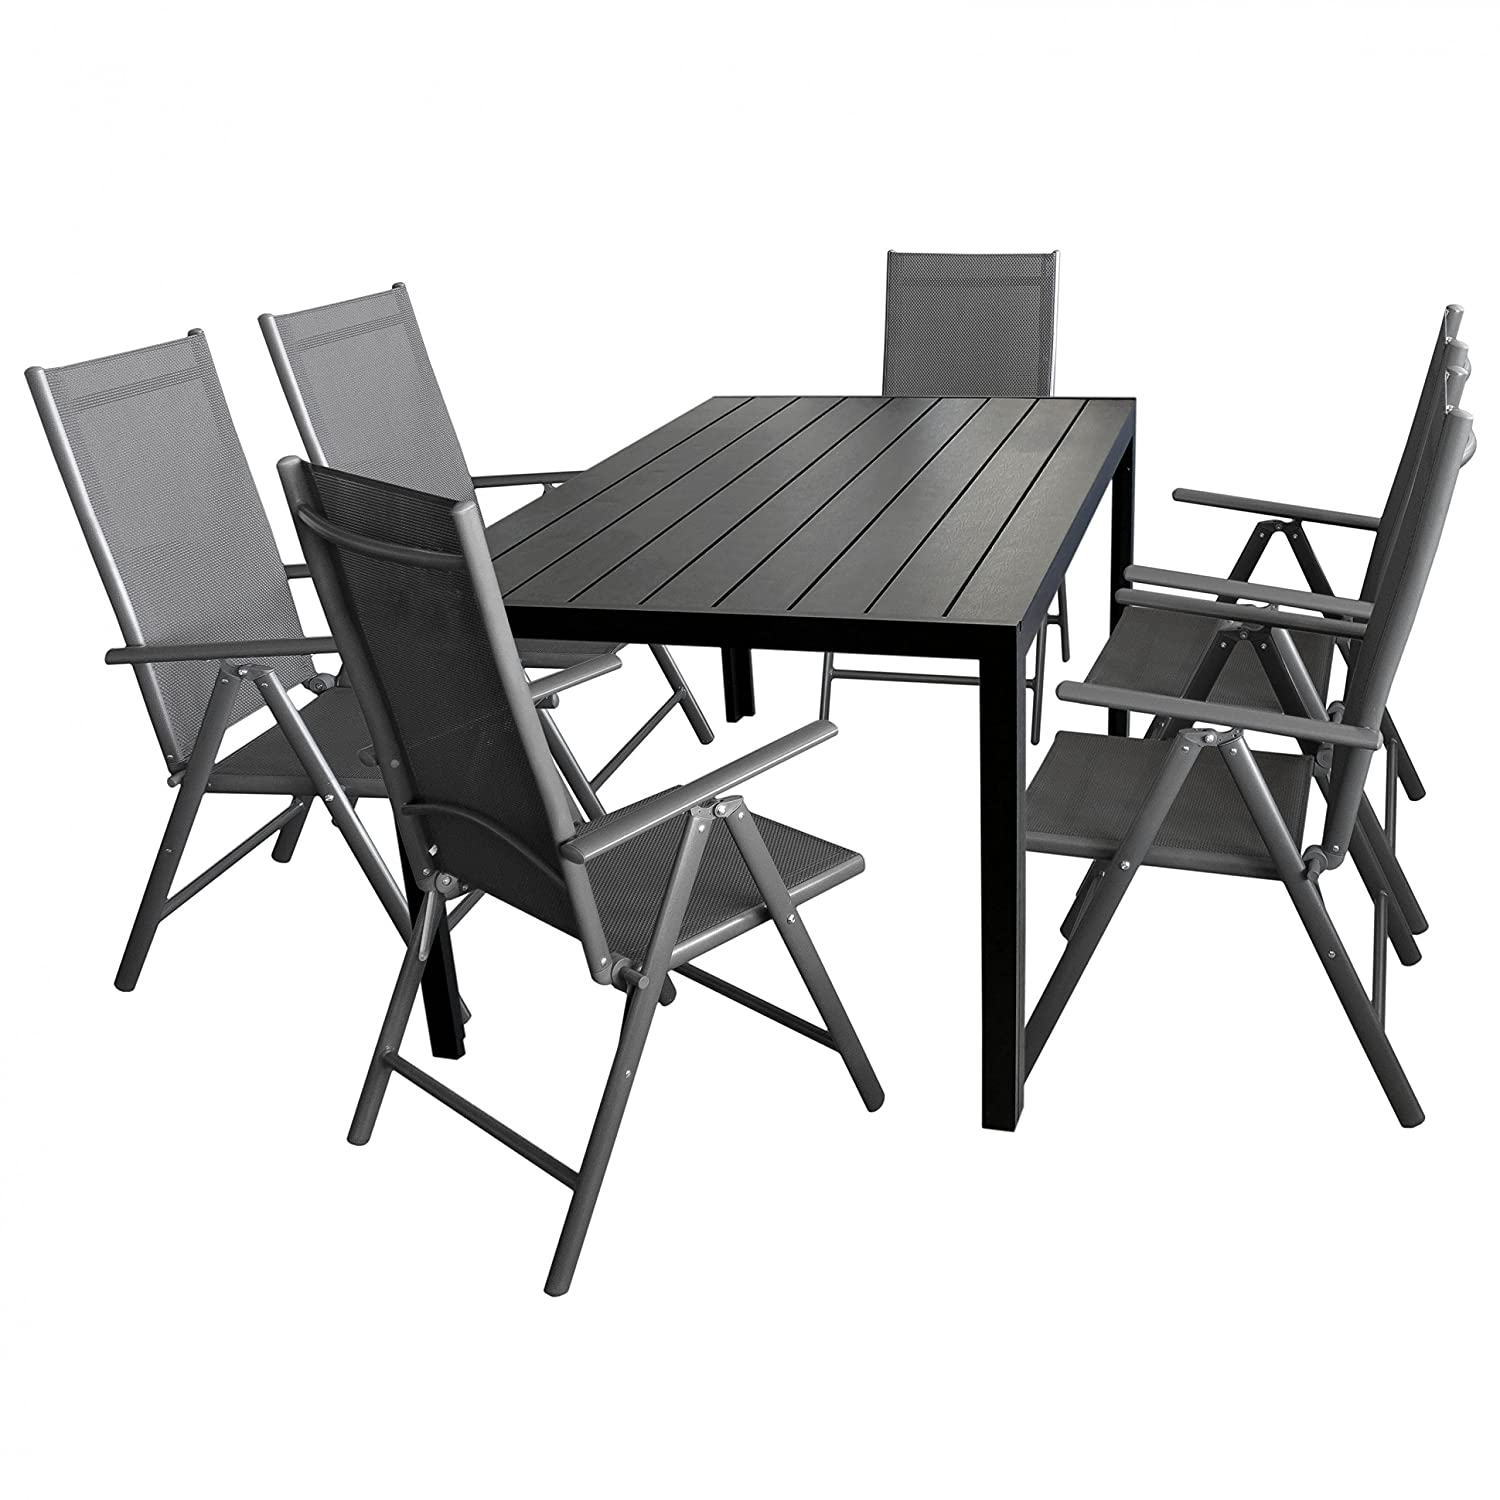 7tlg gartengarnitur gartenm bel terrassenm bel set sitzgruppe aluminium gartentisch polywood. Black Bedroom Furniture Sets. Home Design Ideas